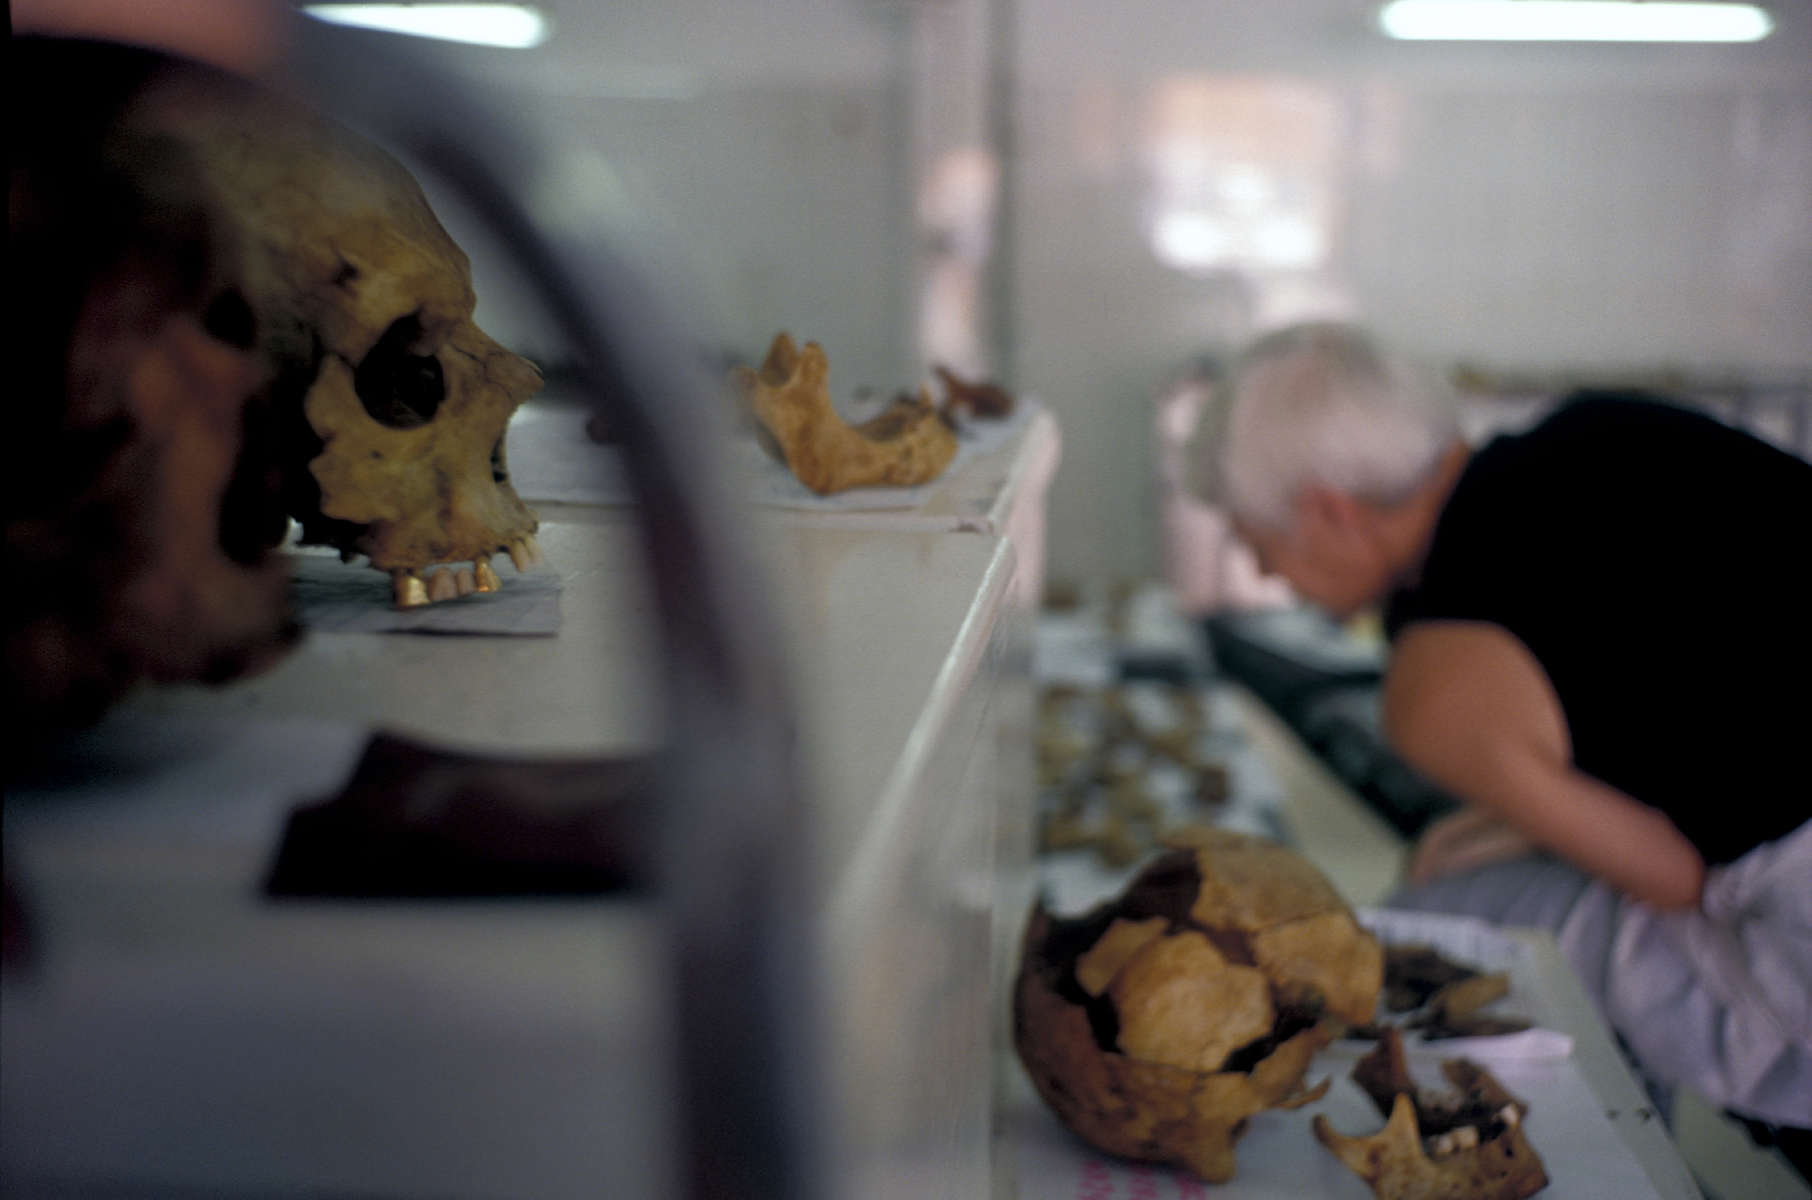 Forensic anthropologist Ewa Klonowski examines skeletons exhumed from a mass grave near Foca, in eastern Bosnia.